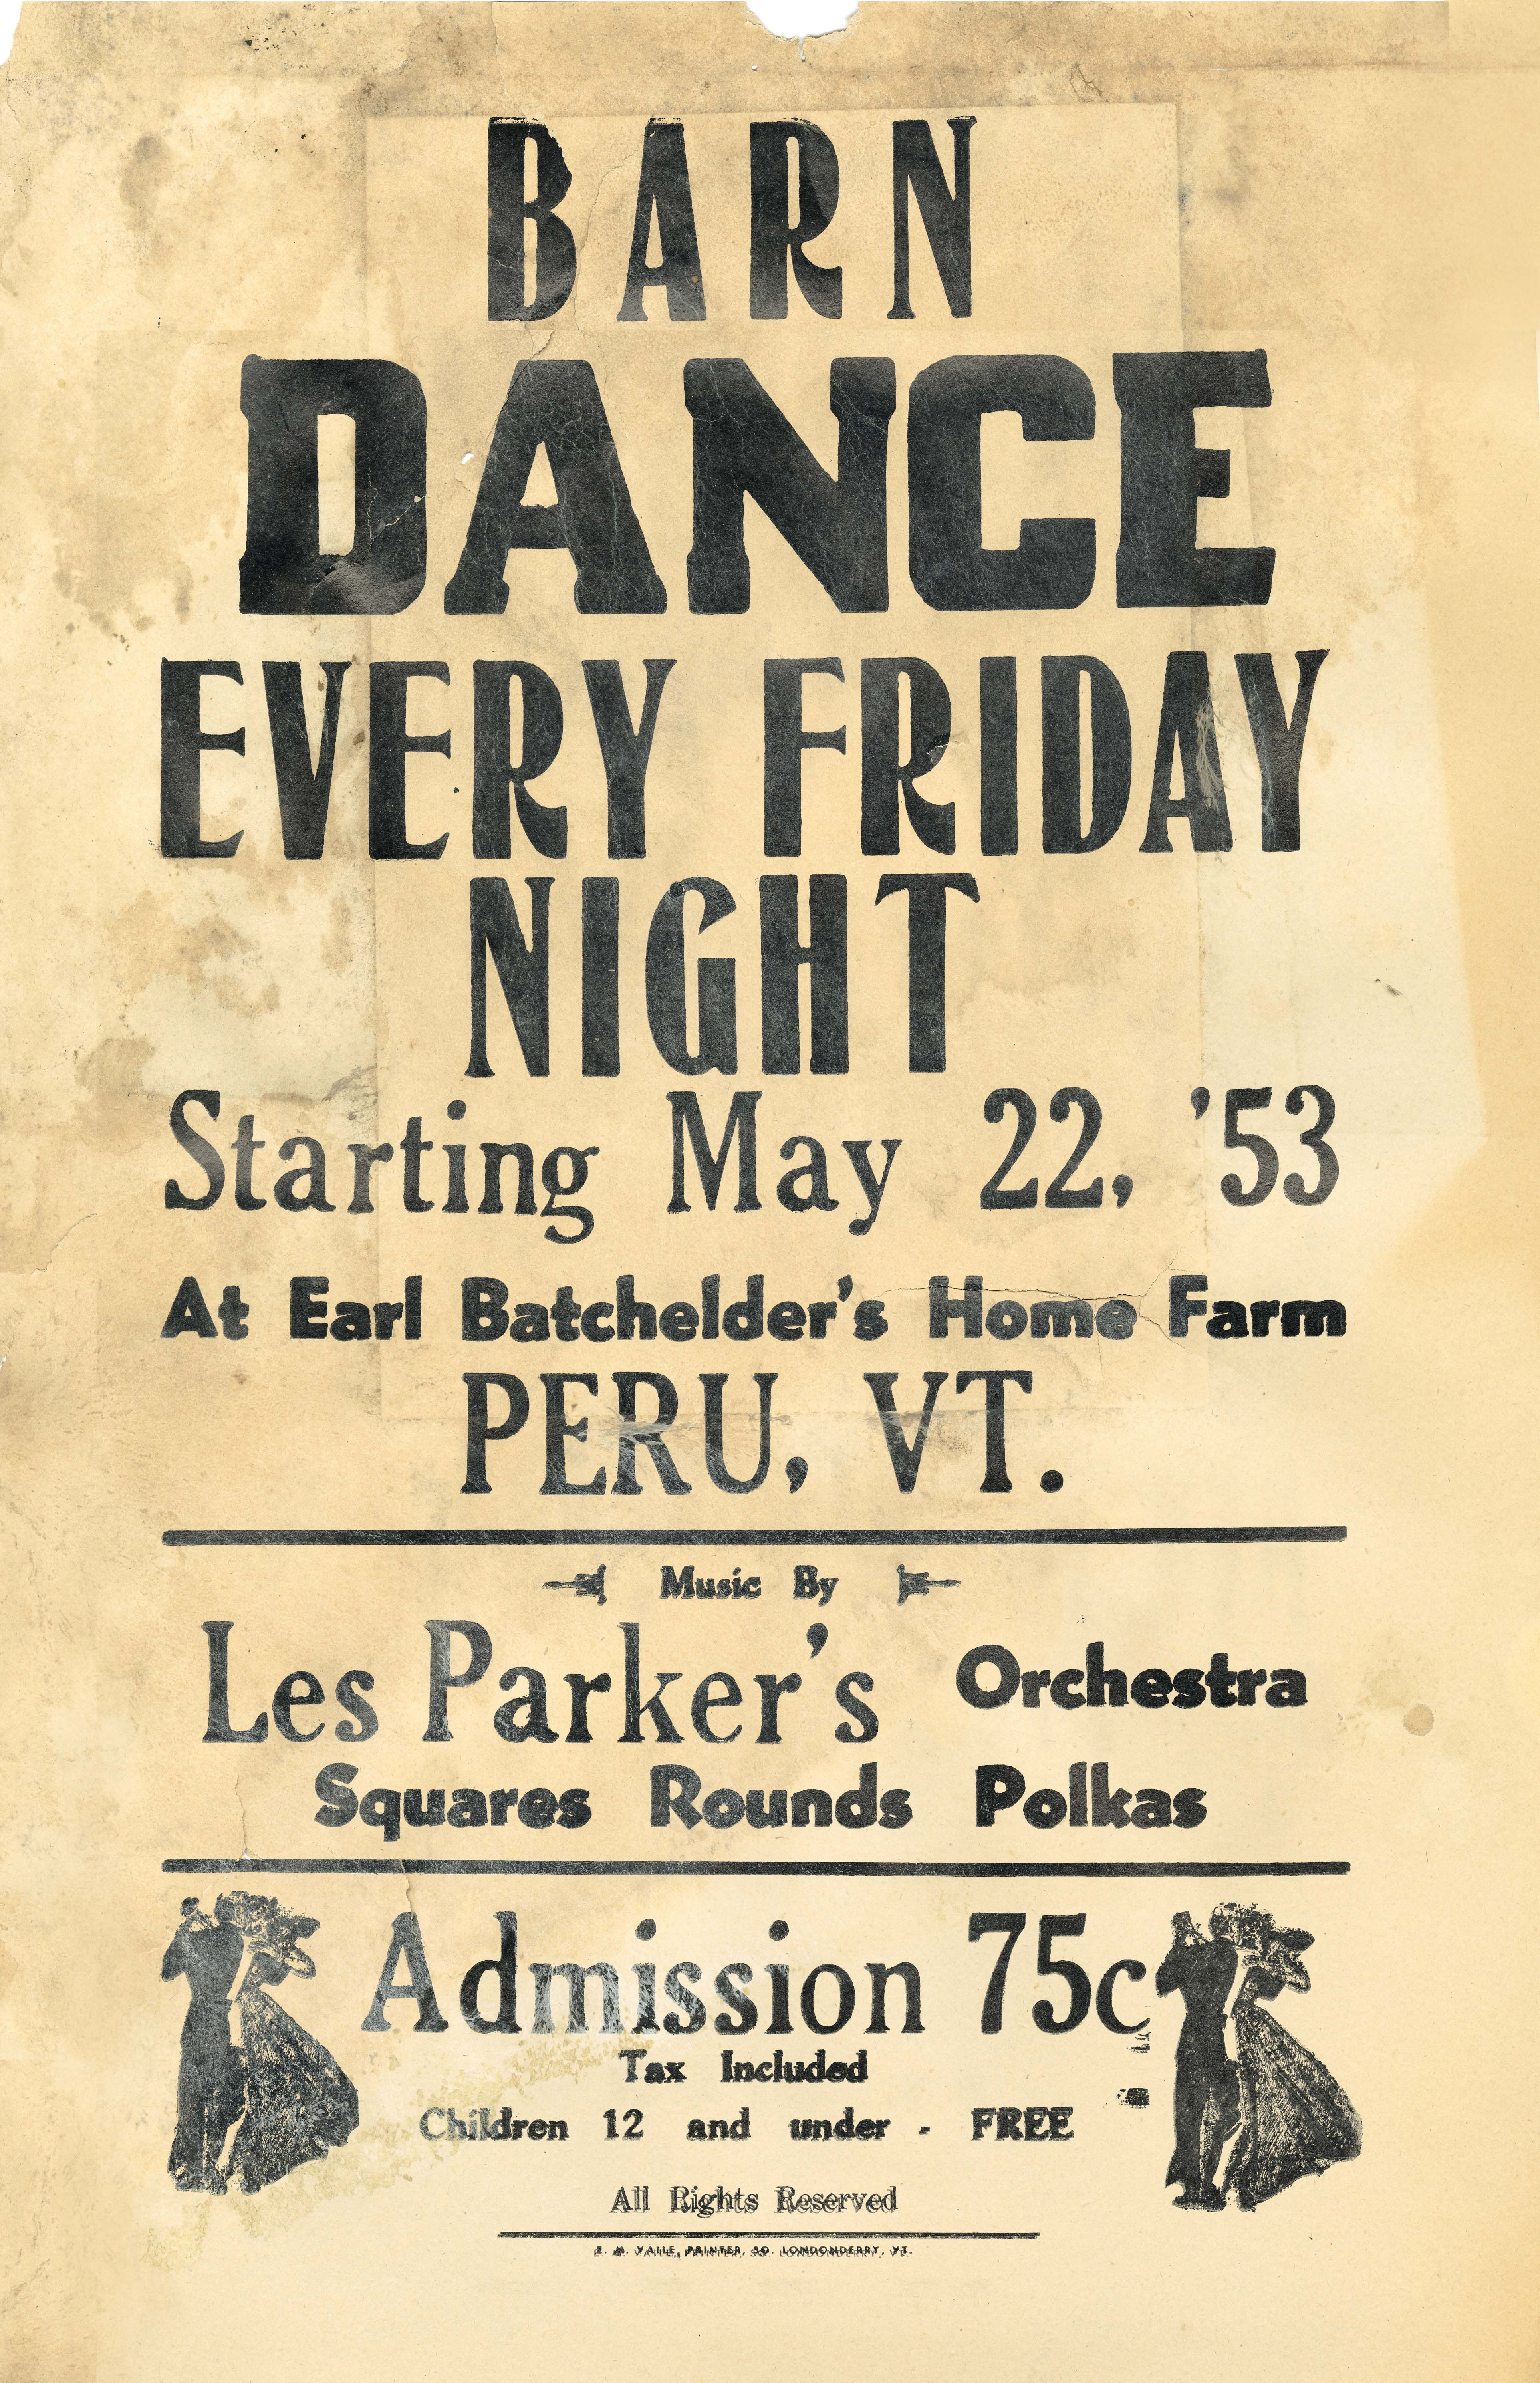 Barn Dance Flyer From Have You Ever Attended An Old